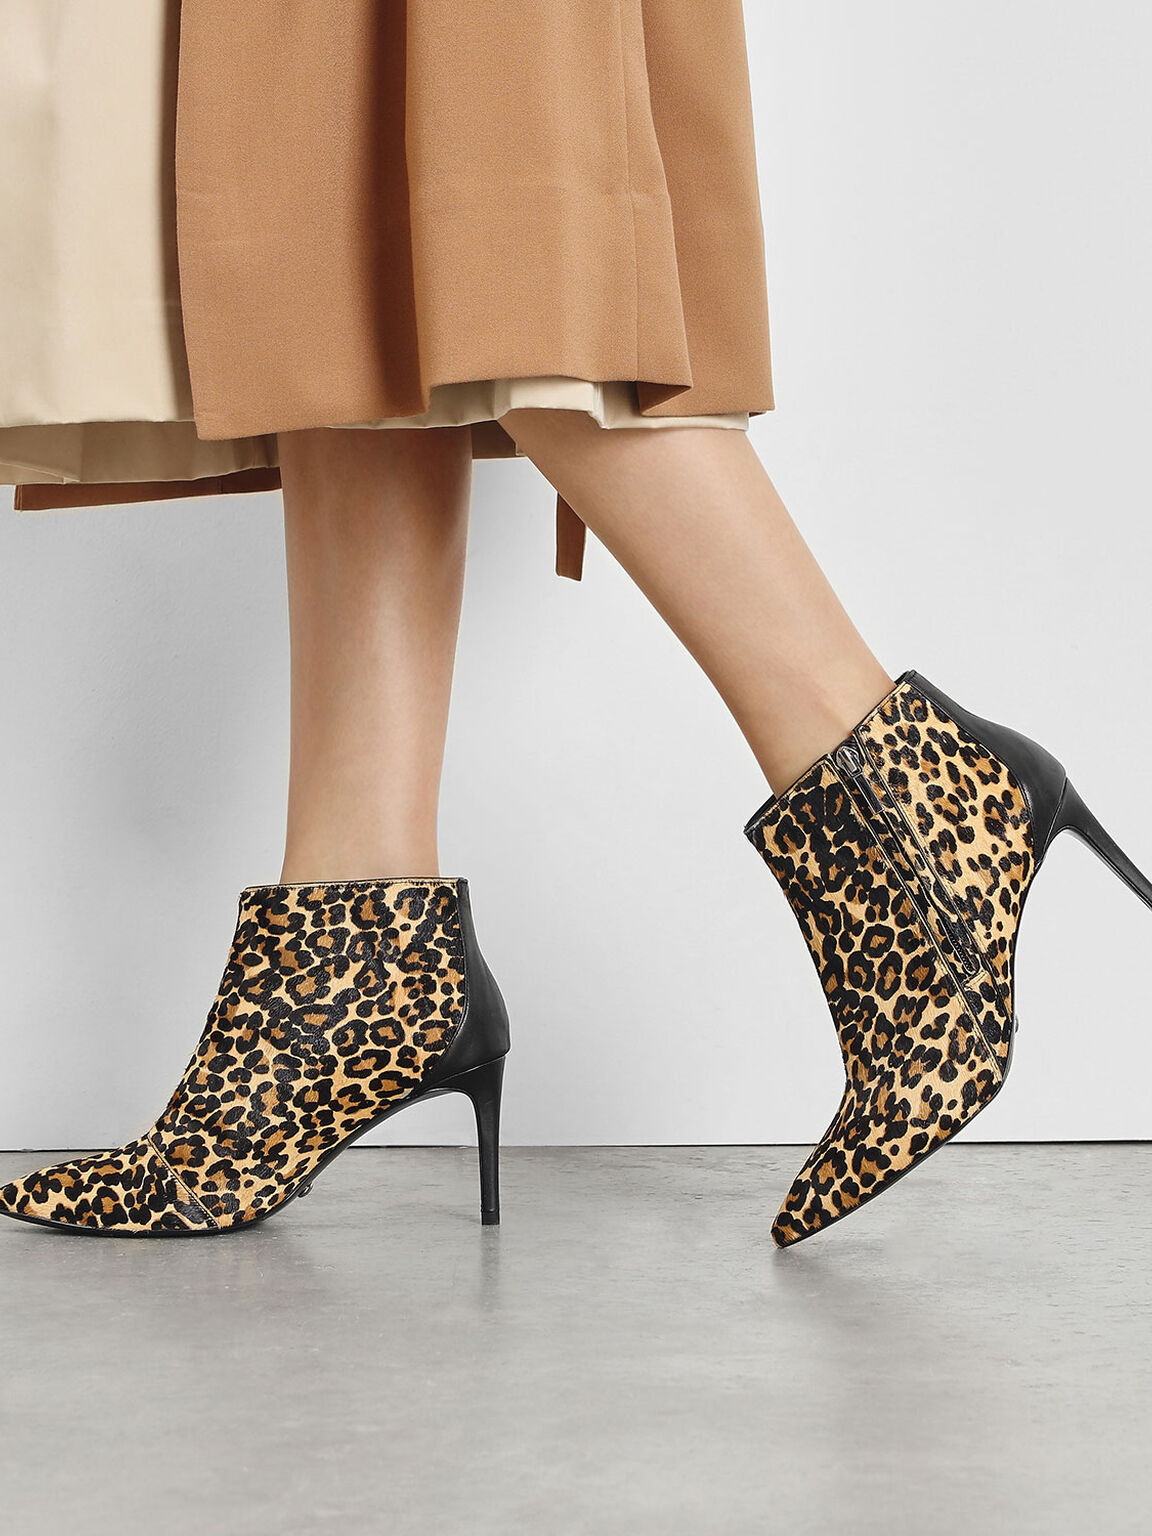 Pony Hair Leopard Print Boots, Multi, hi-res